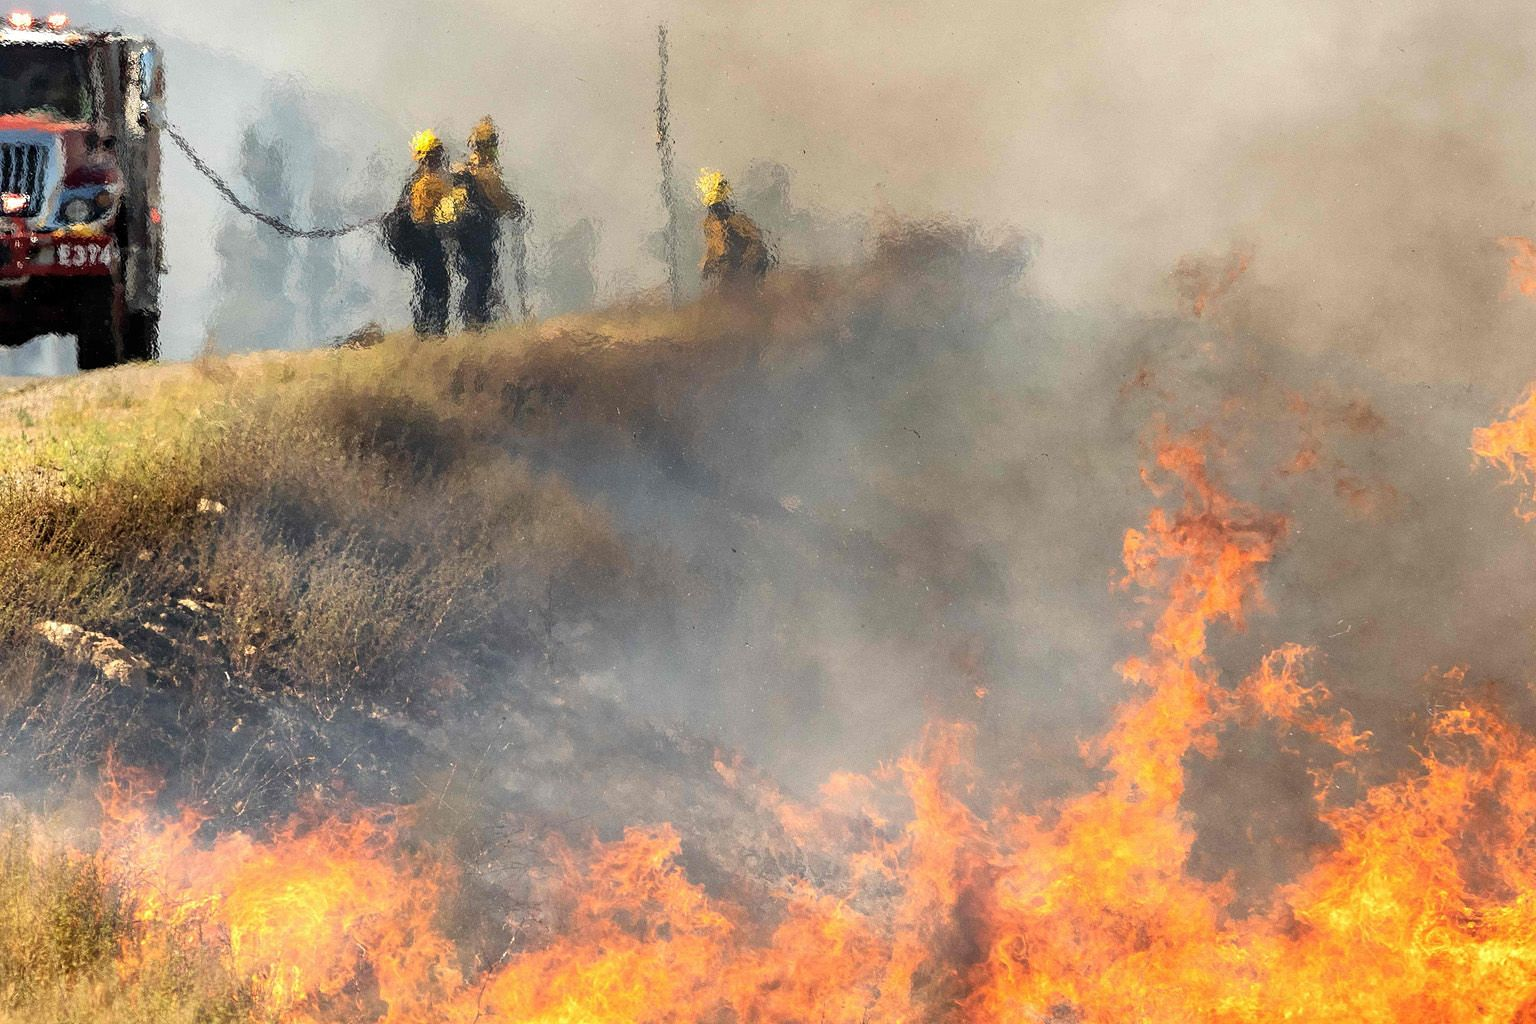 Firefighters, seen through heat from flames, battling the wildfire near Banning, in Southern California, last Saturday. PHOTO: AGENCE FRANCE-PRESSE